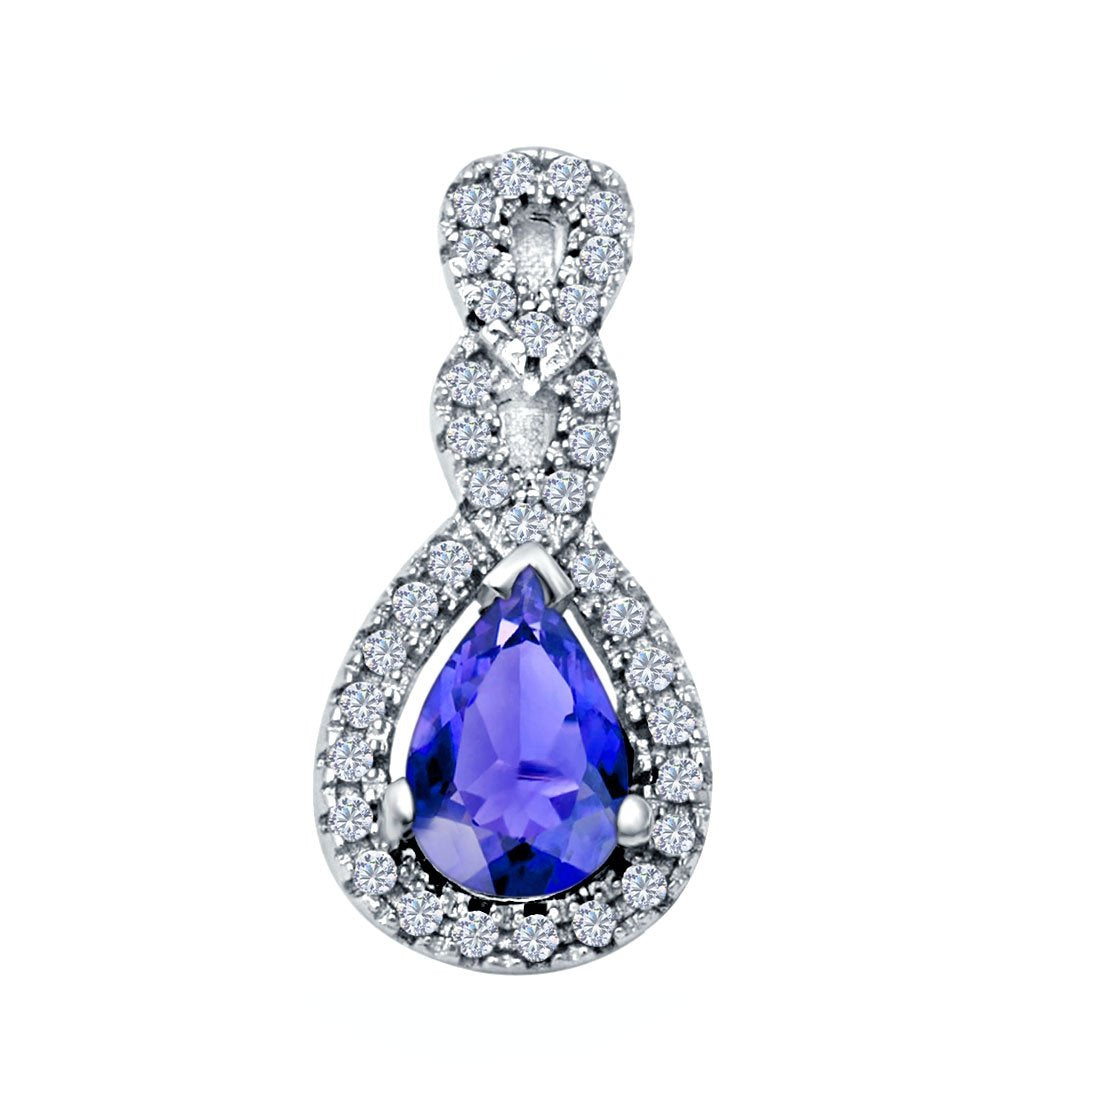 Fashion Jewelry Charm Pendant Pear Simulated Tanzanite CZ 925 Sterling Silver